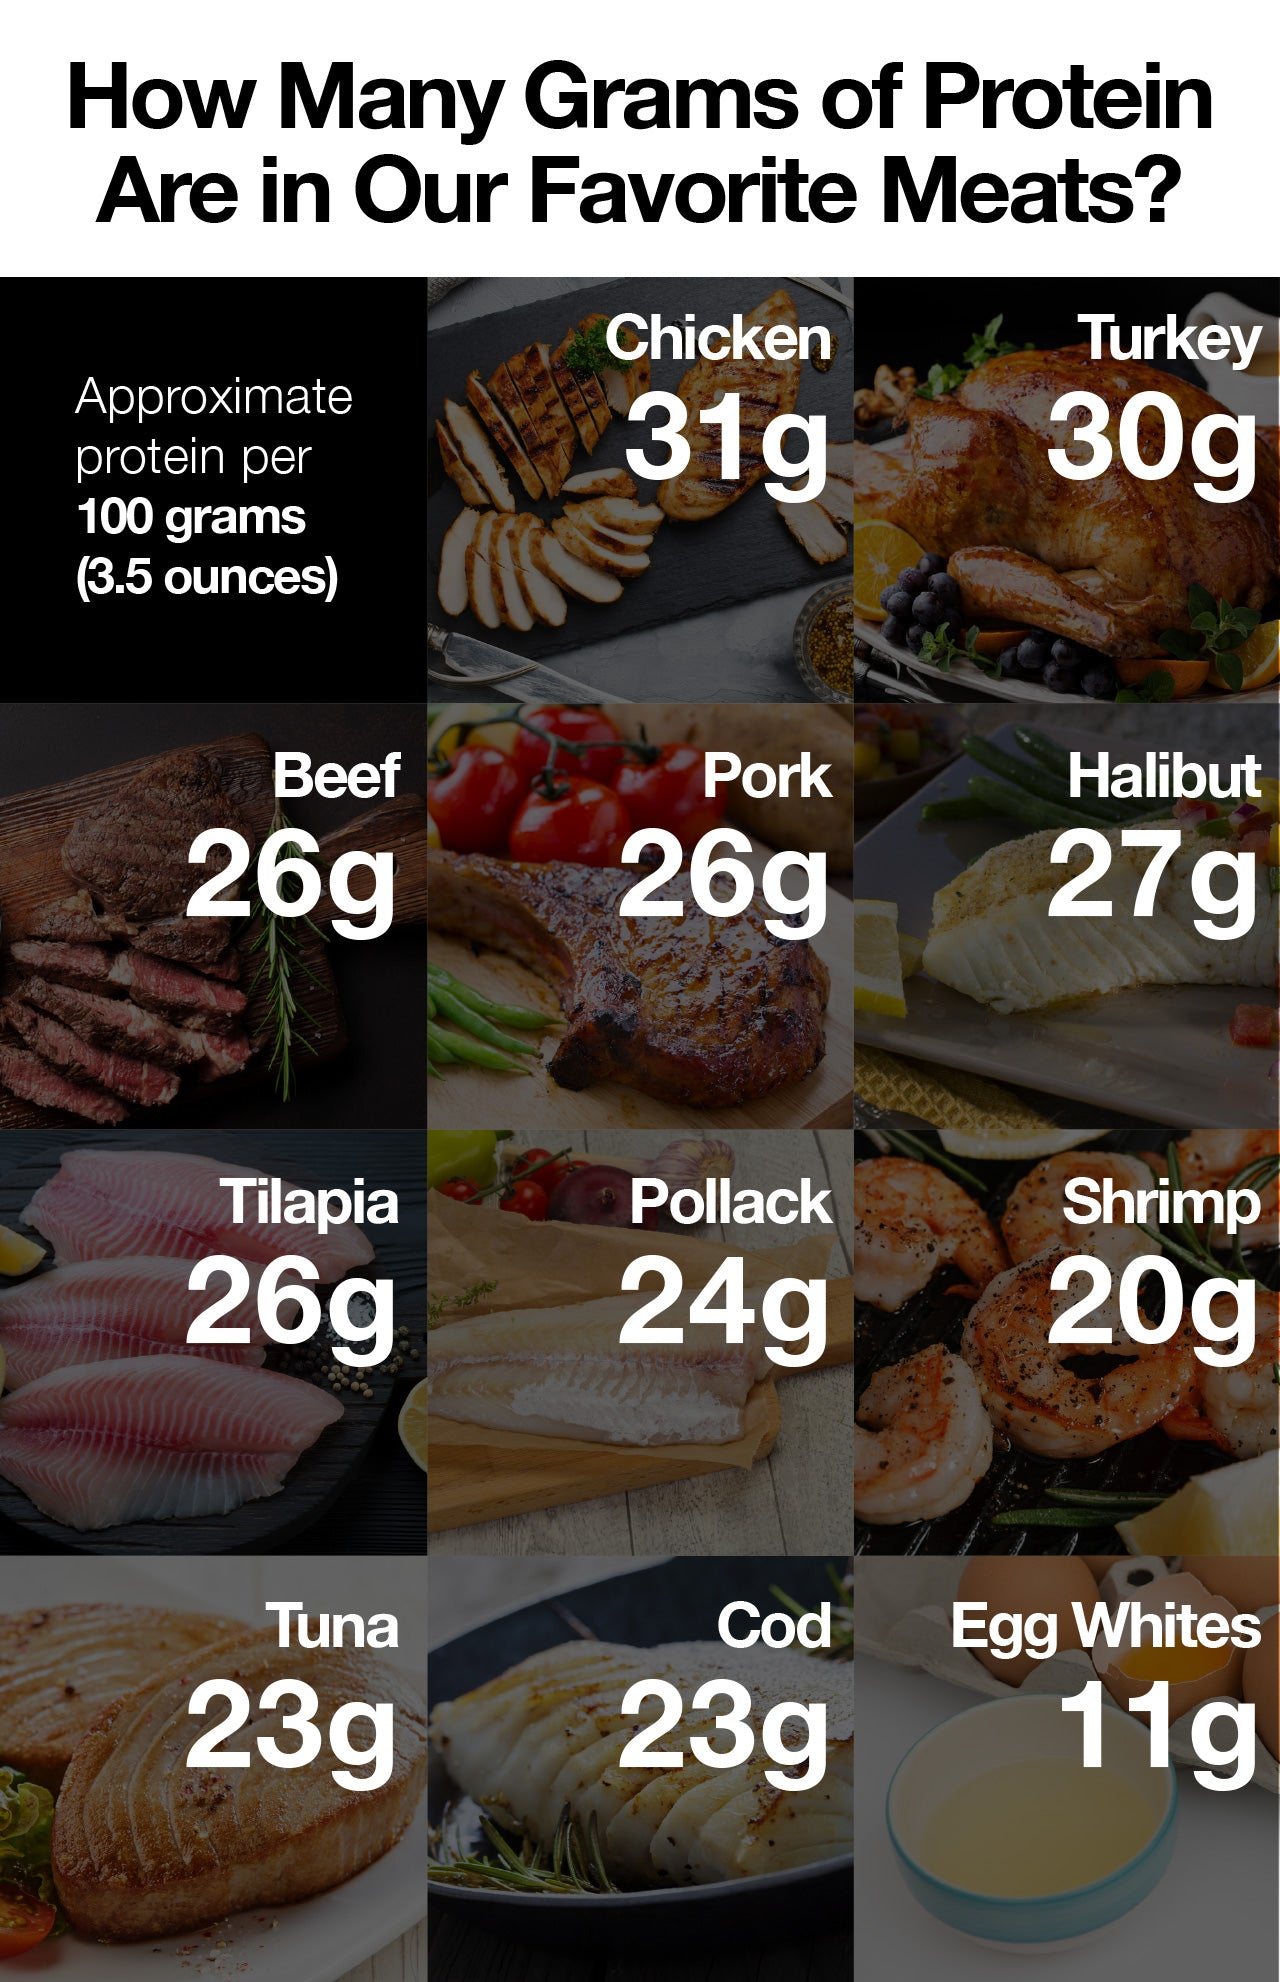 How many grams of protein are in our favorite meats?